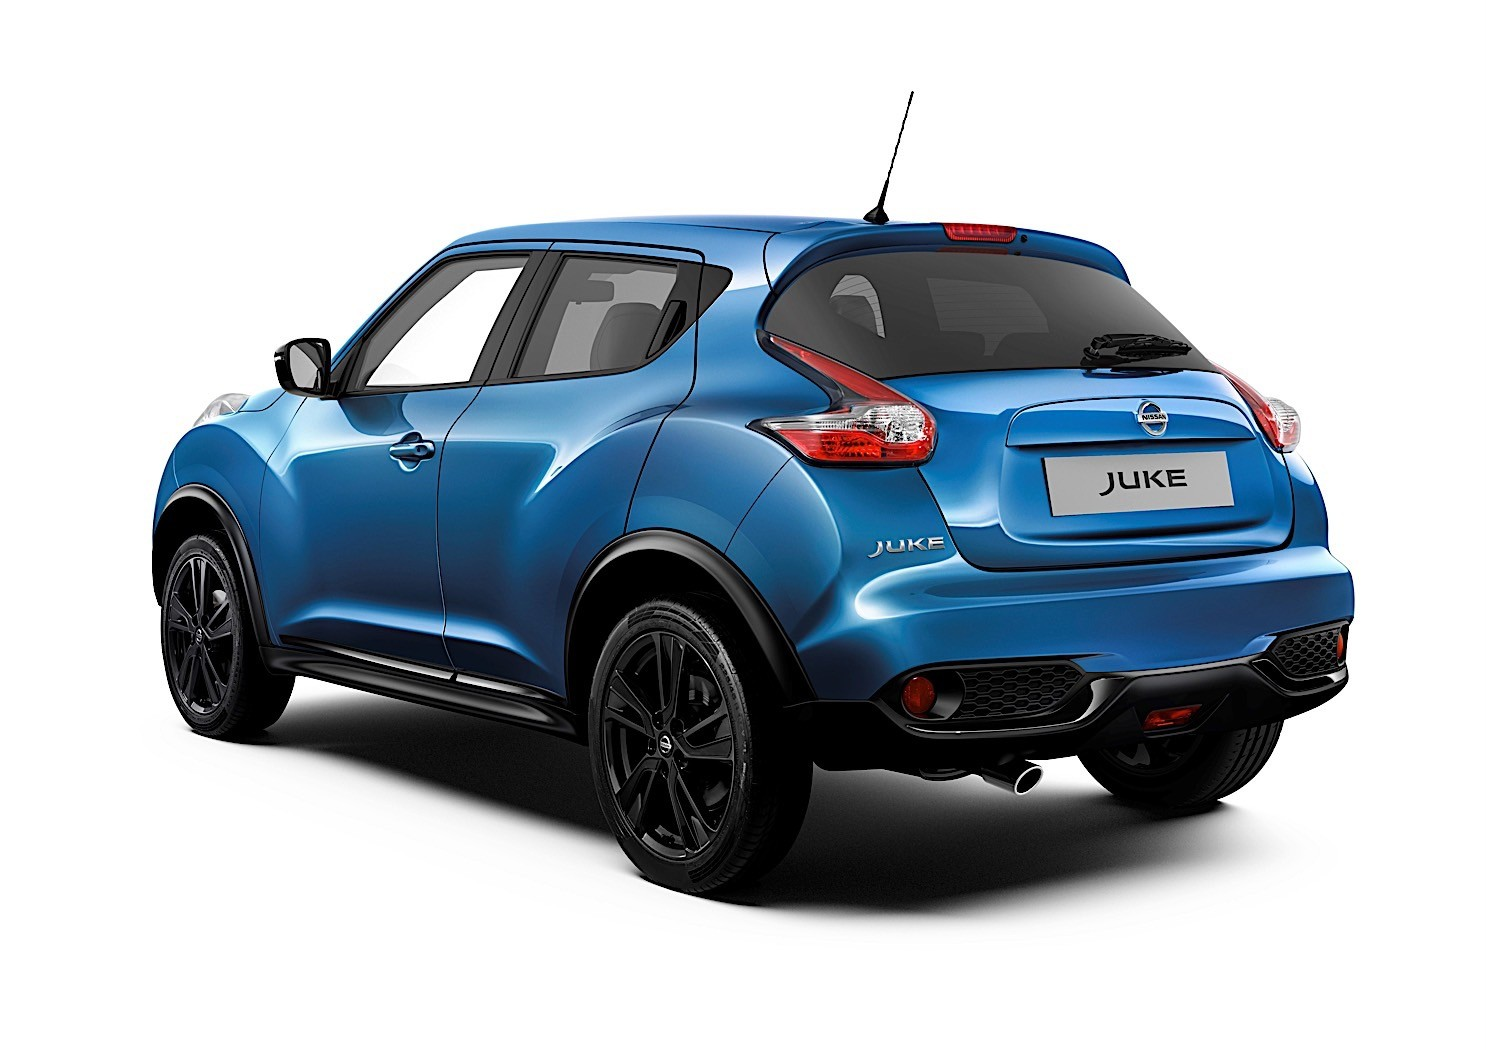 Nissan upgrades juke for the 2018 geneva motor show for Nissan juke dauertest